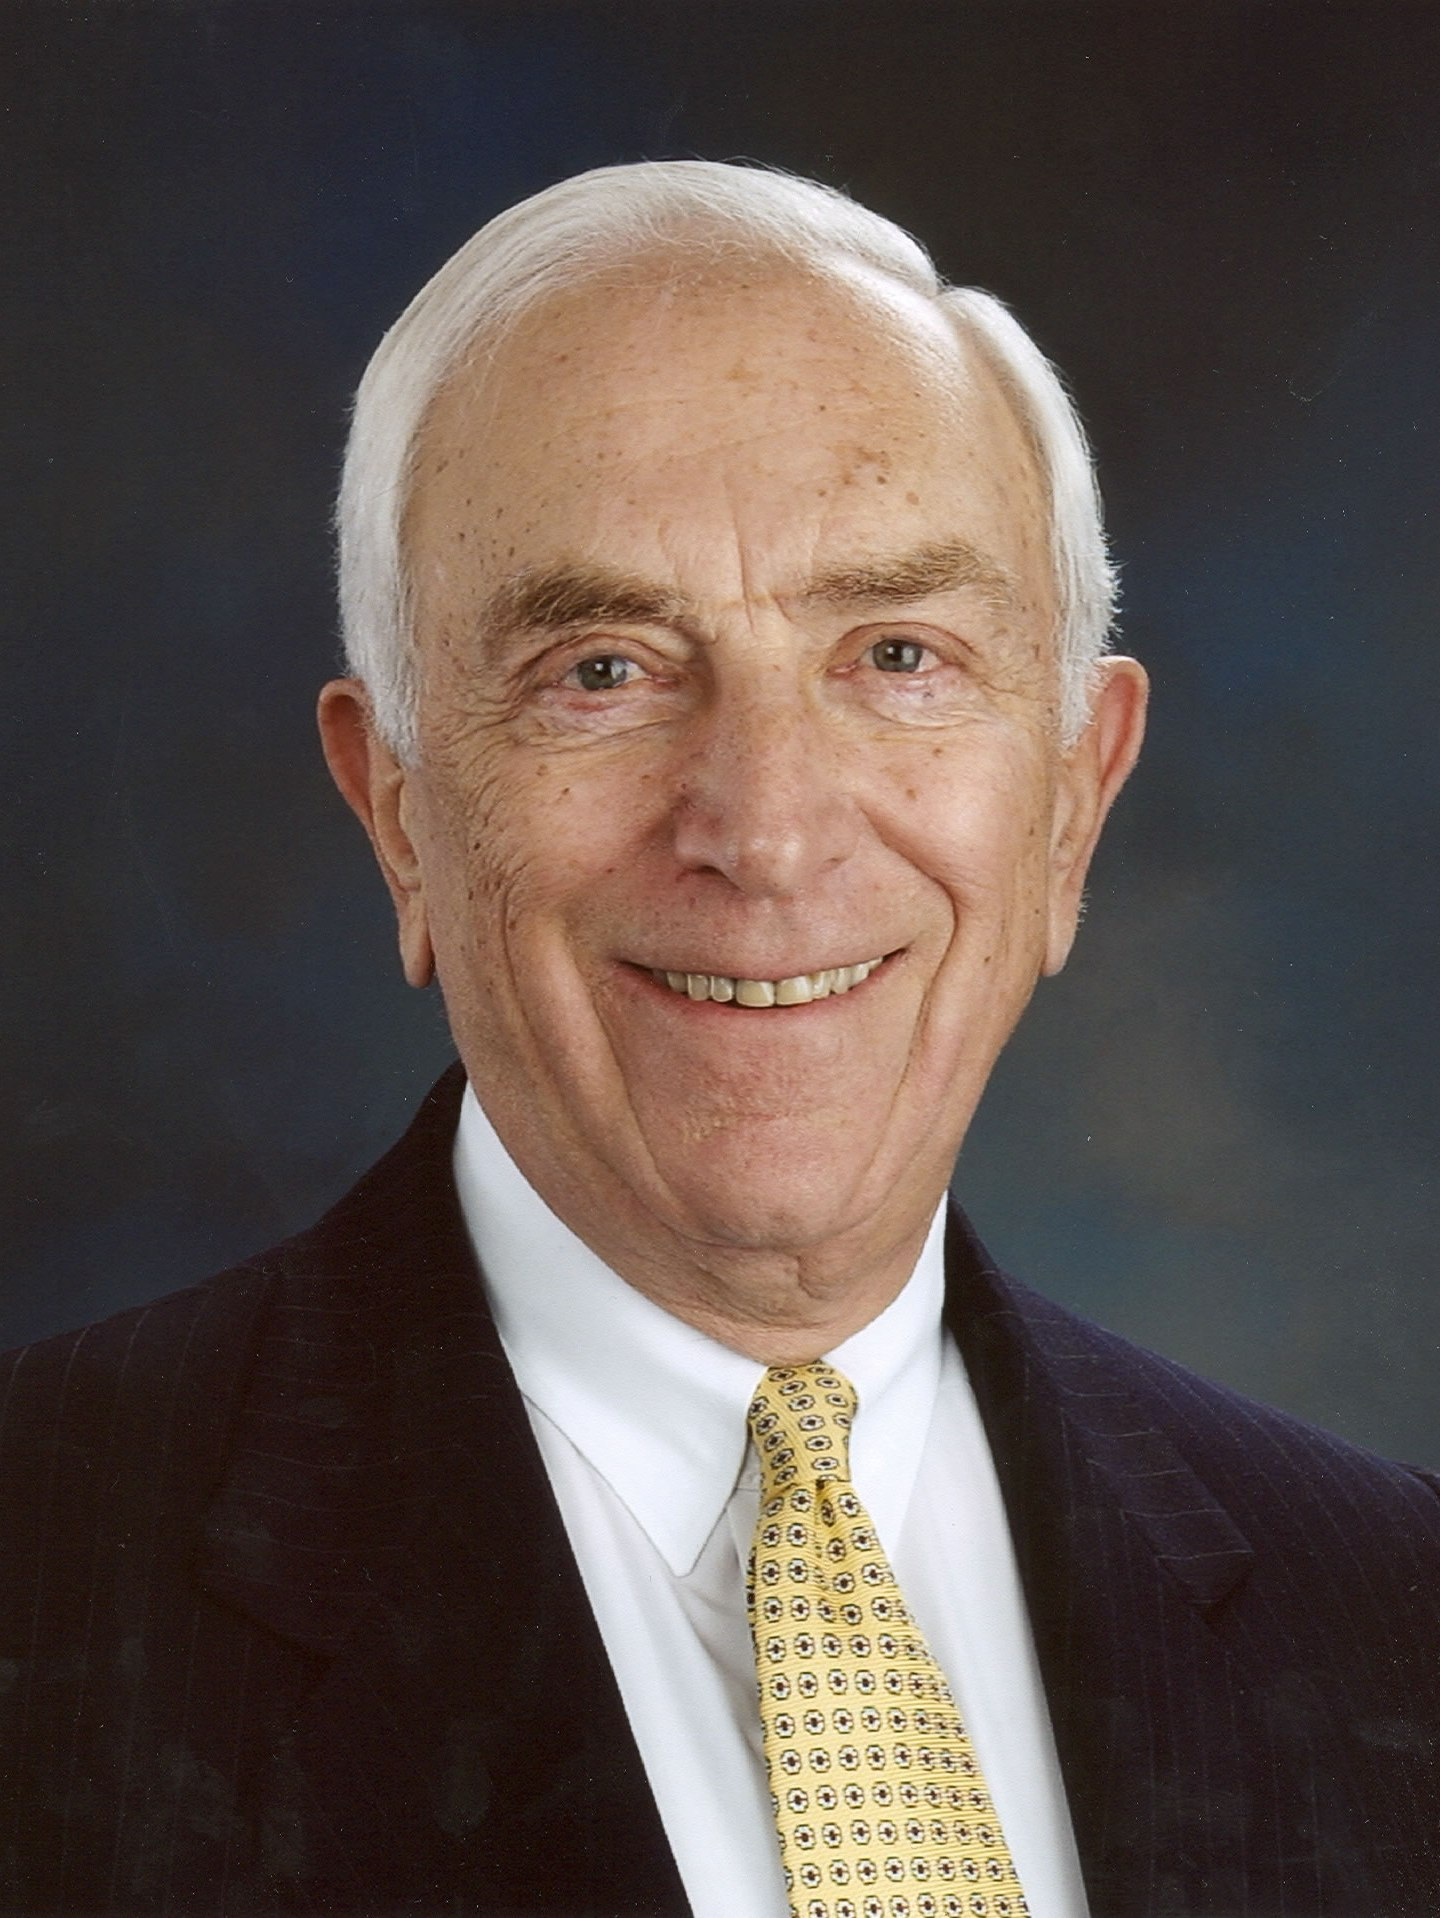 Frank Lautenberg (Photo: CNN)